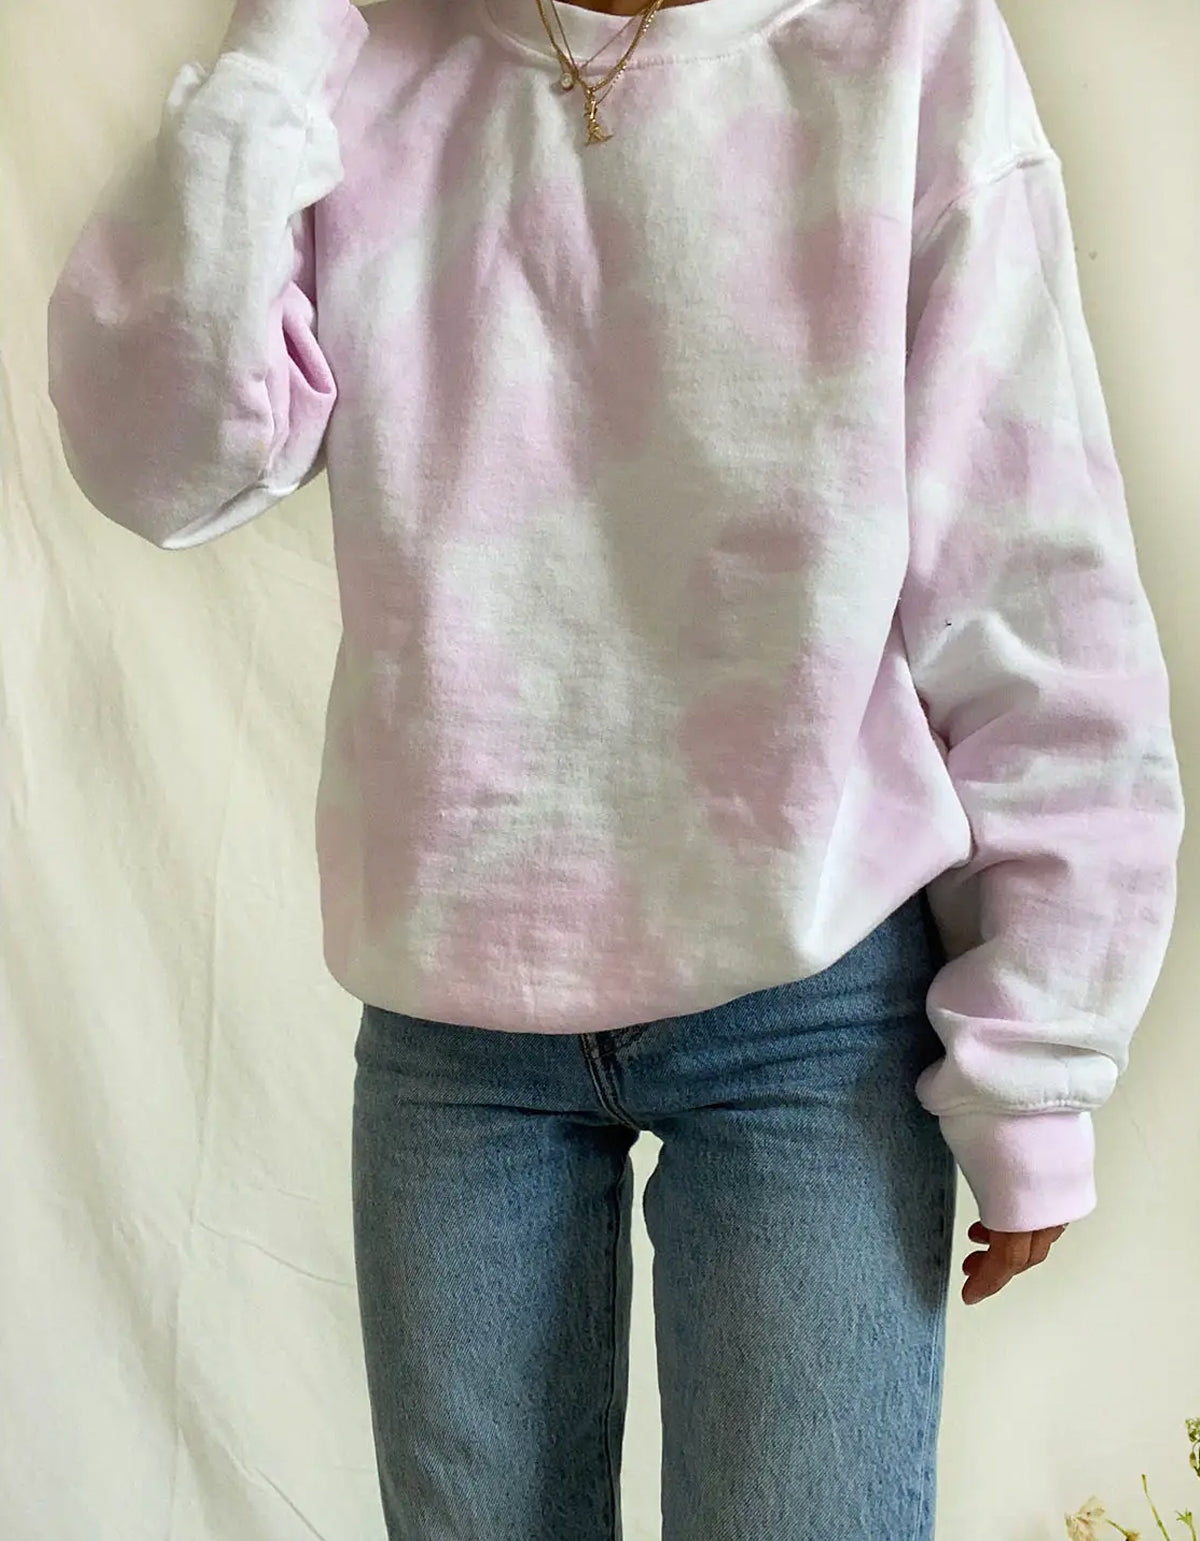 The Things Between Tie Dye Crewneck Sweatshirt Cotton Candy